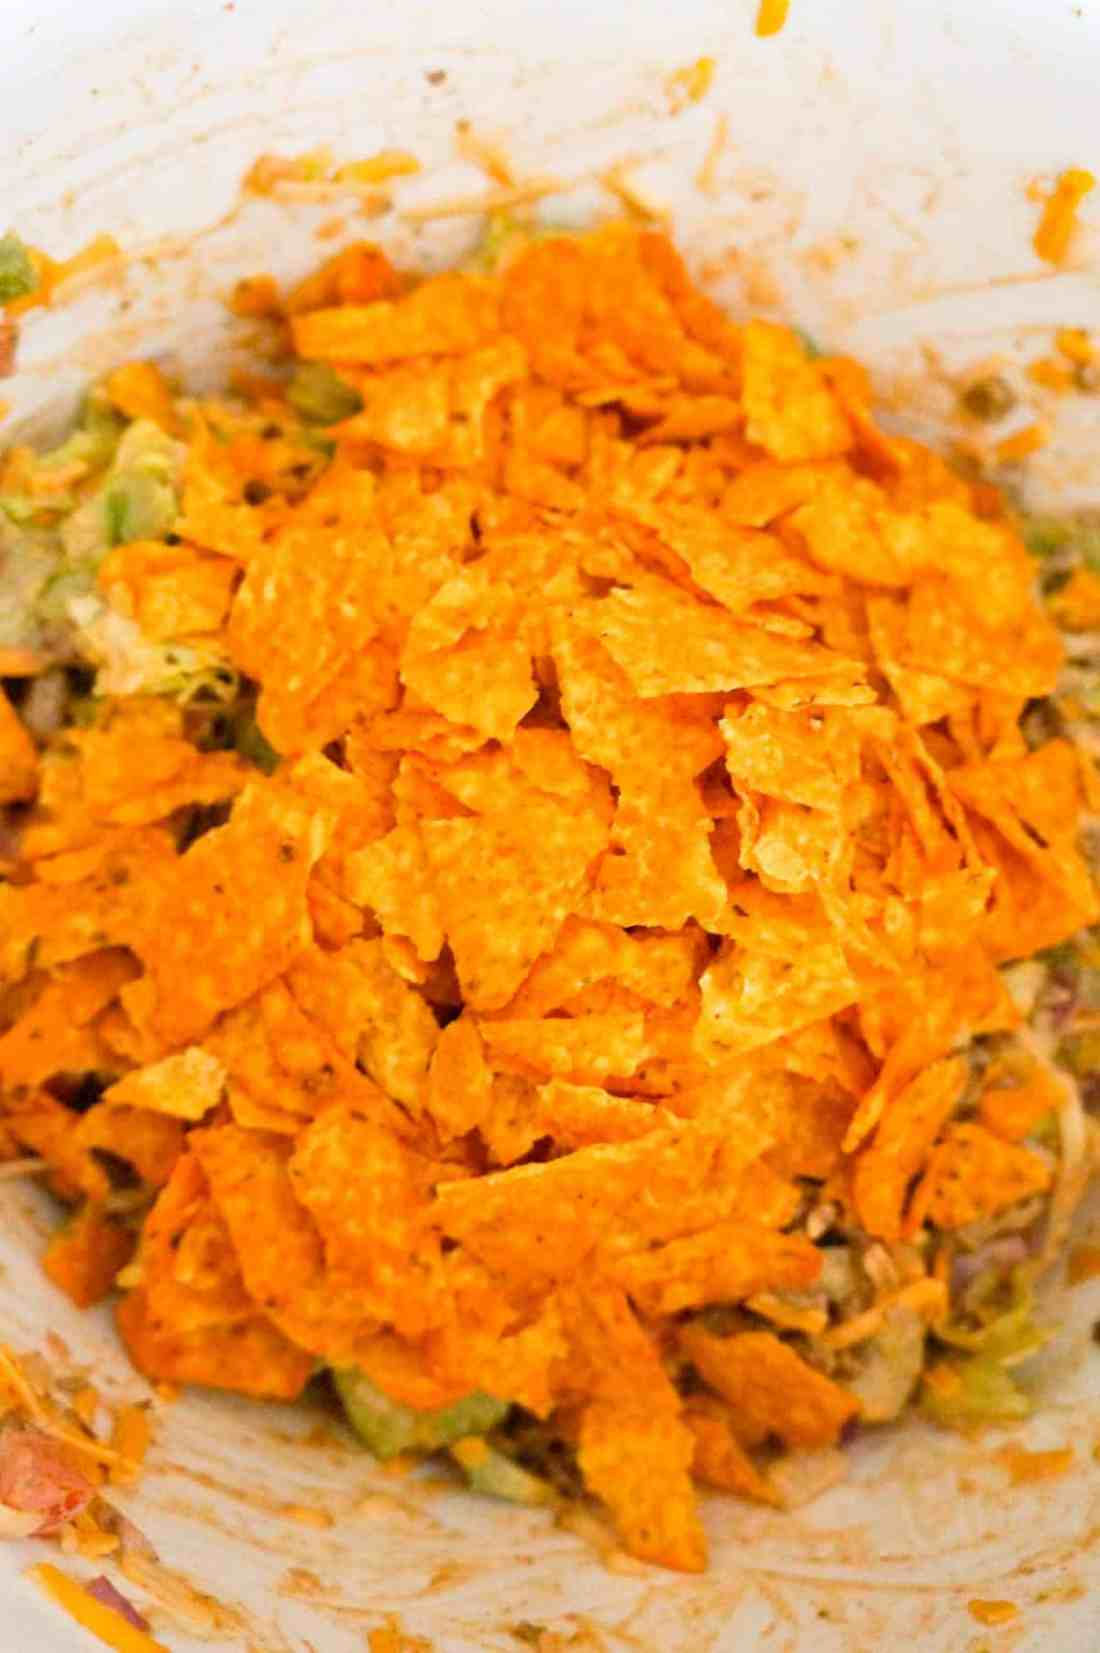 crumbled Doritos on top of salad in a mixing bowl